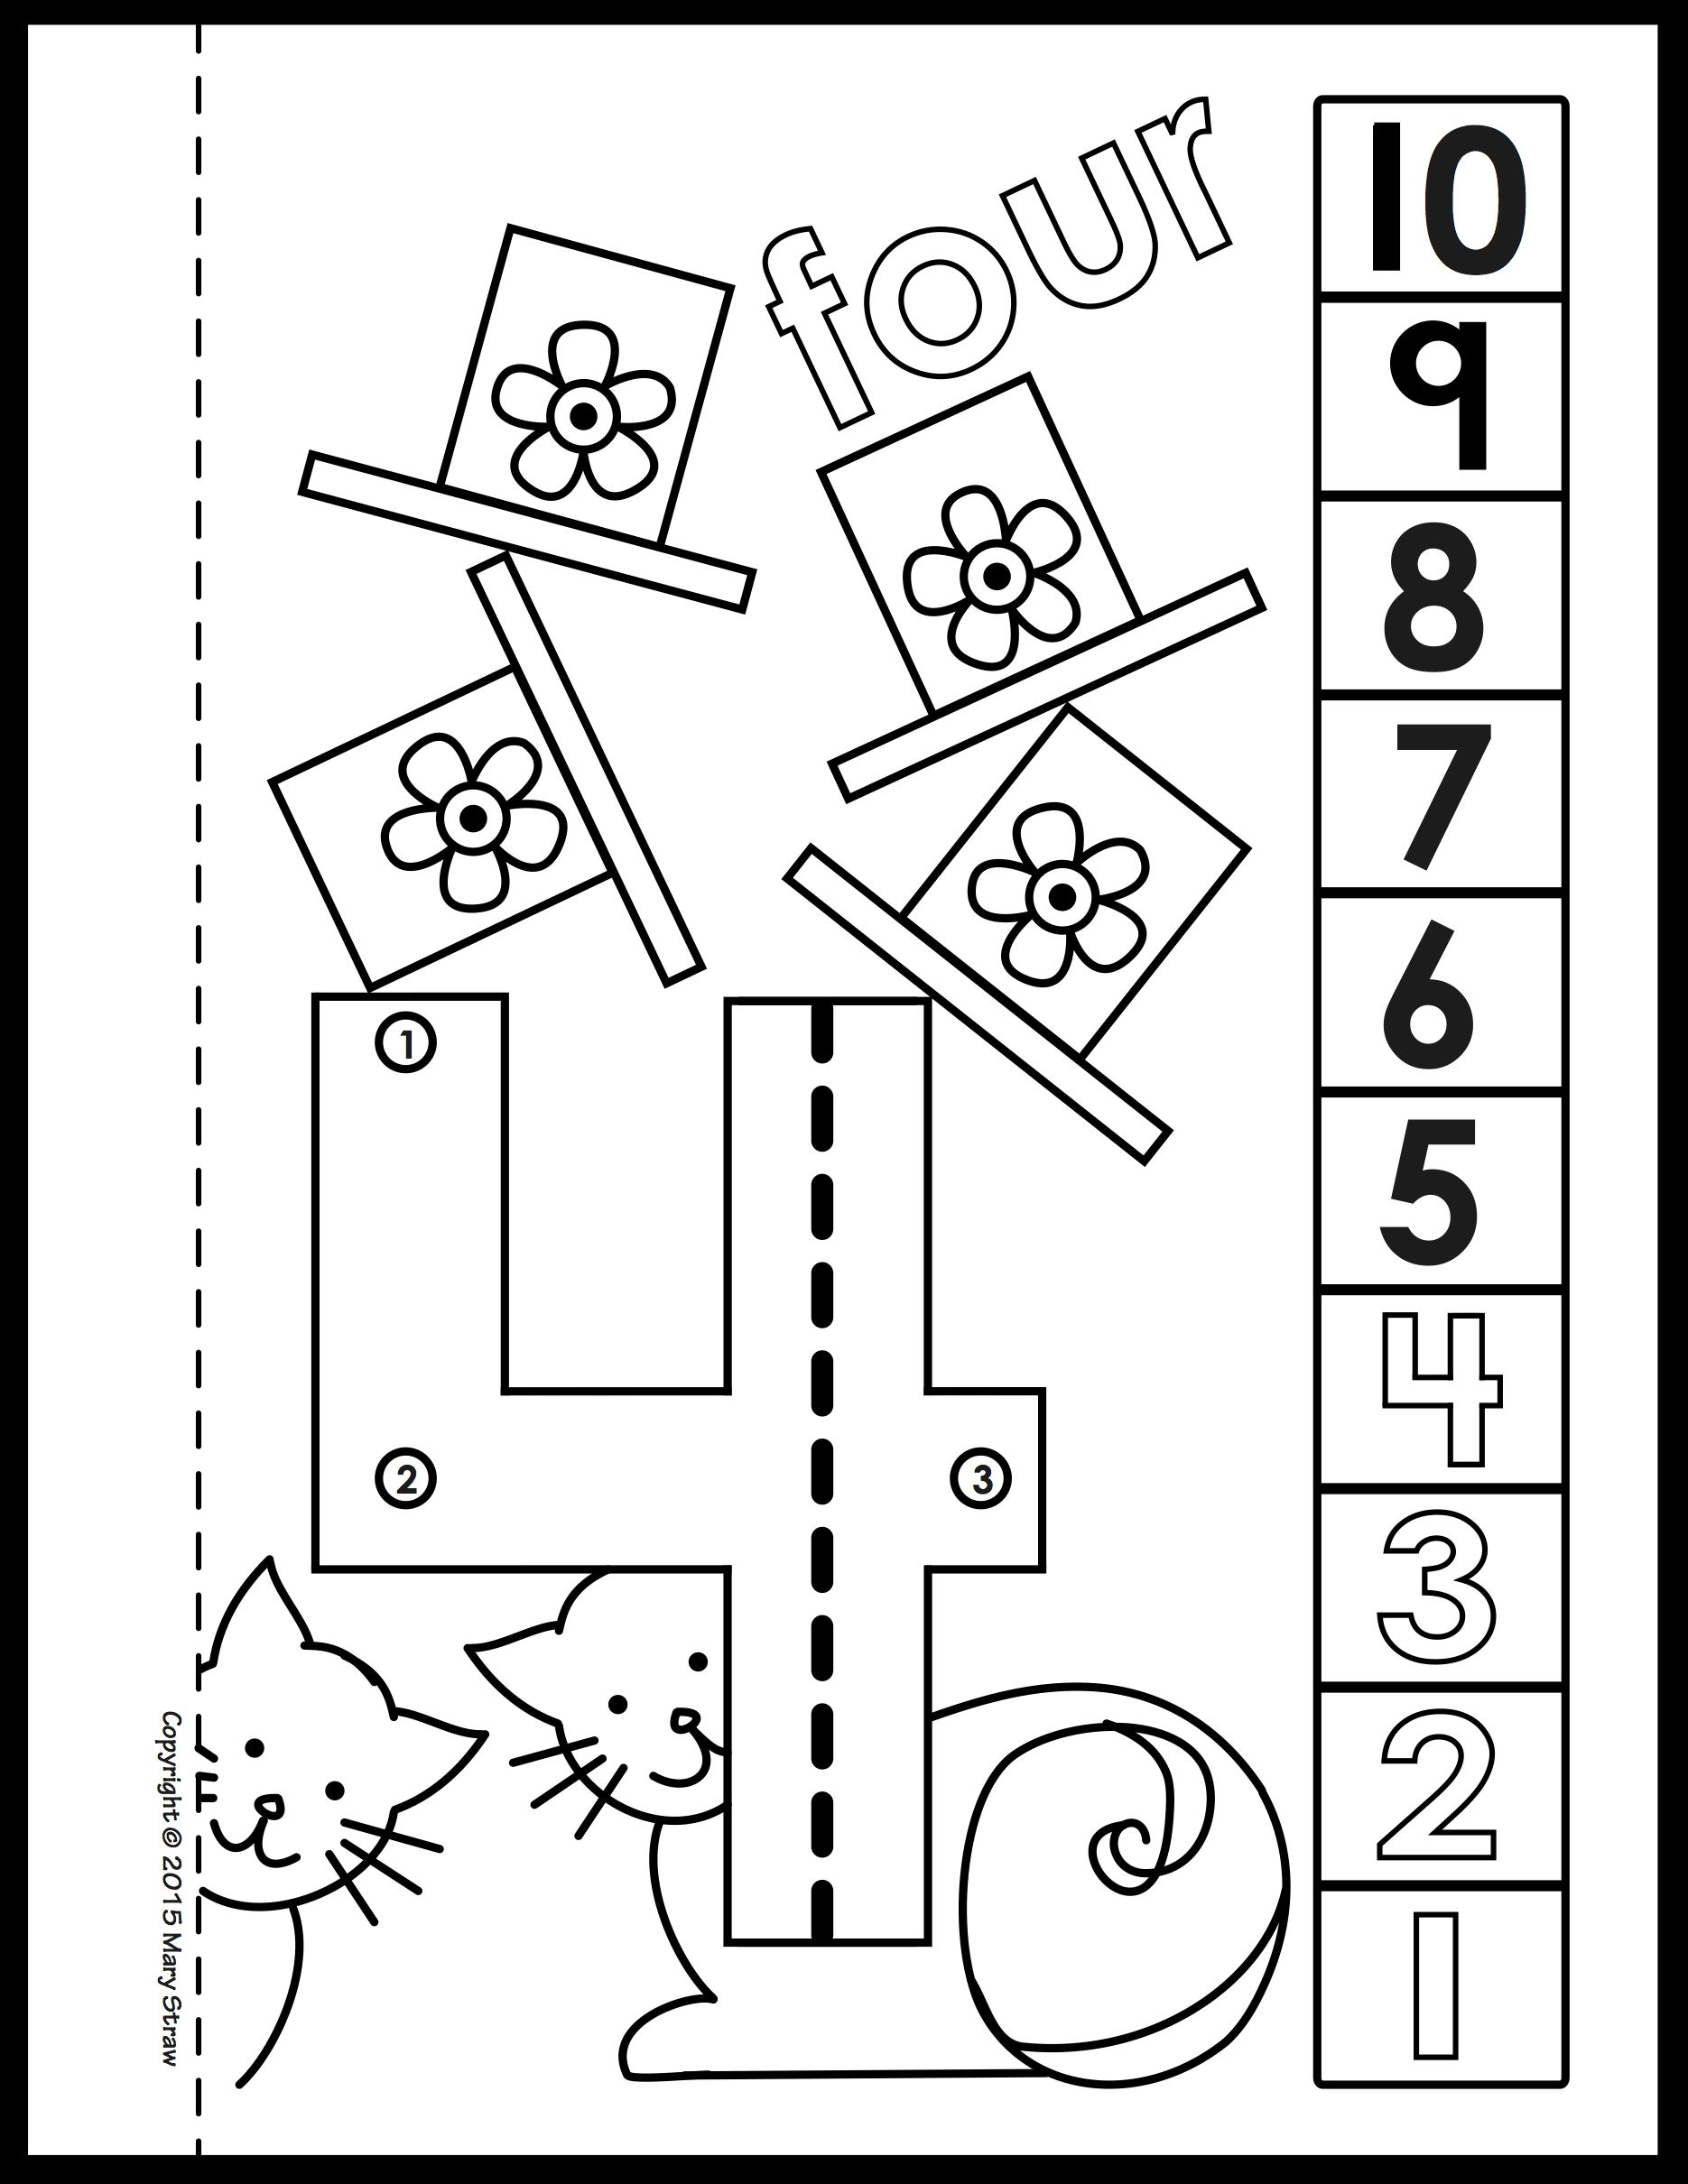 Dot-to-Dot Number Book 1-20 Activity Coloring Pages in ...